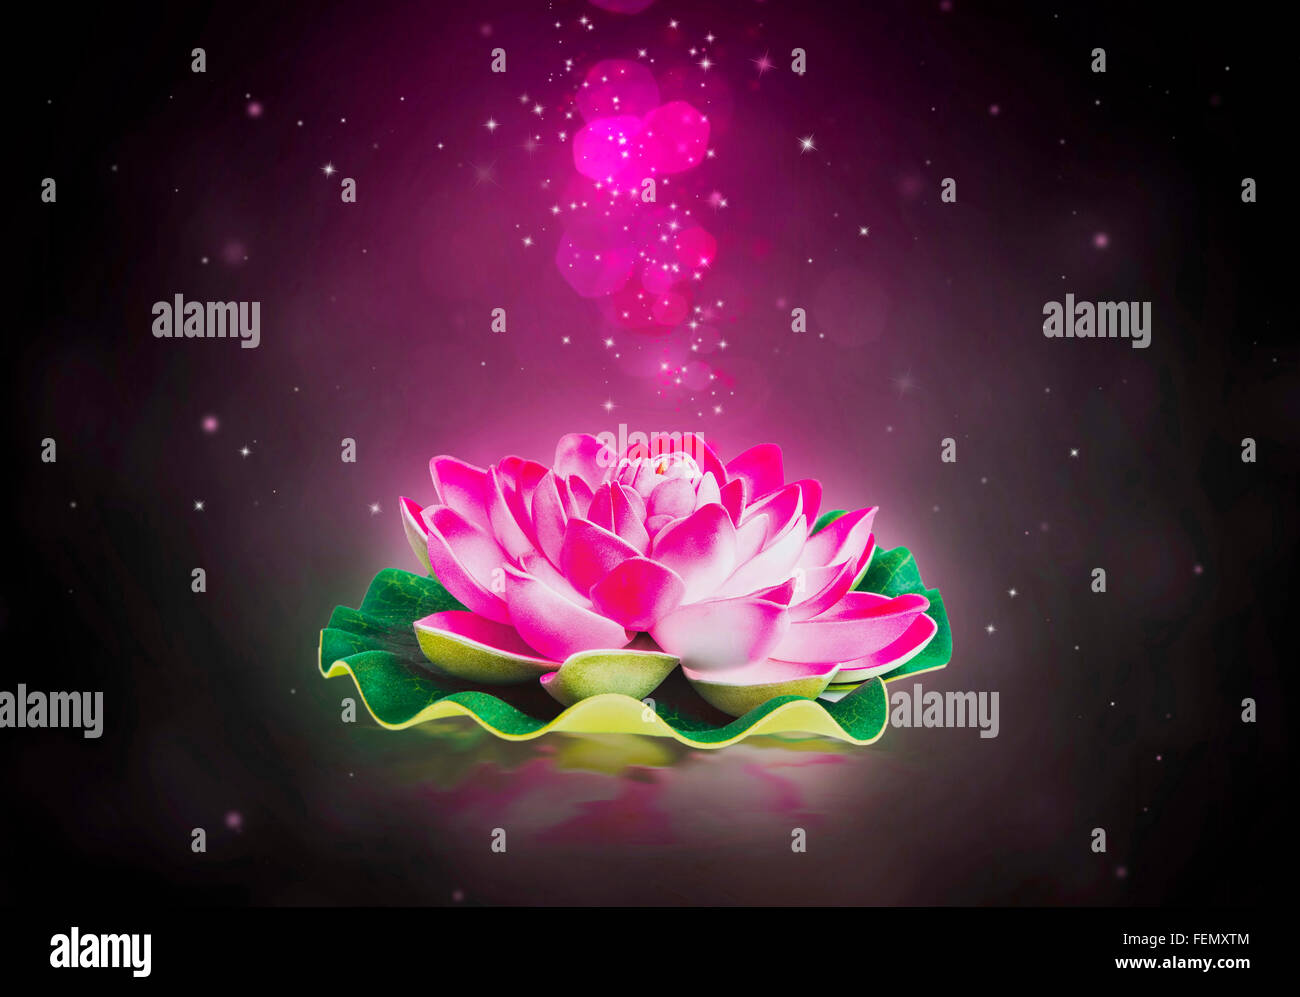 Lotus flower wallpaper stock photos lotus flower wallpaper stock dreamy magic lotus flower with sparkle in the water stock image mightylinksfo